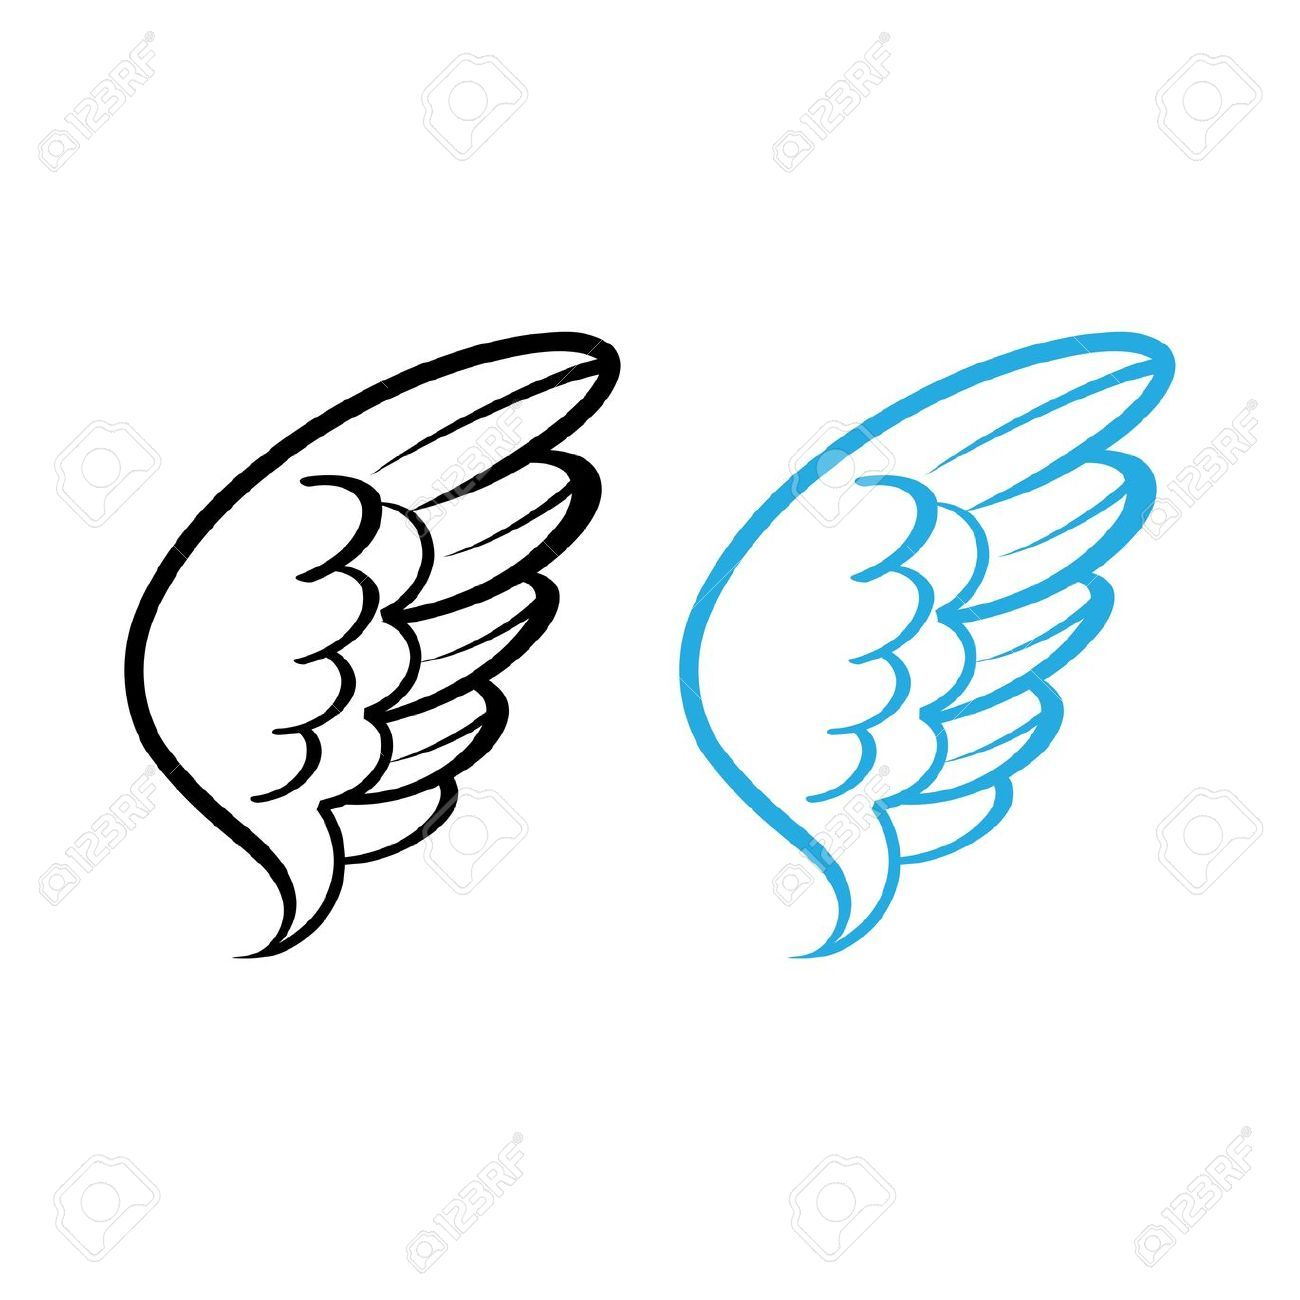 simple illustration of angels - Google Search | Wings ...